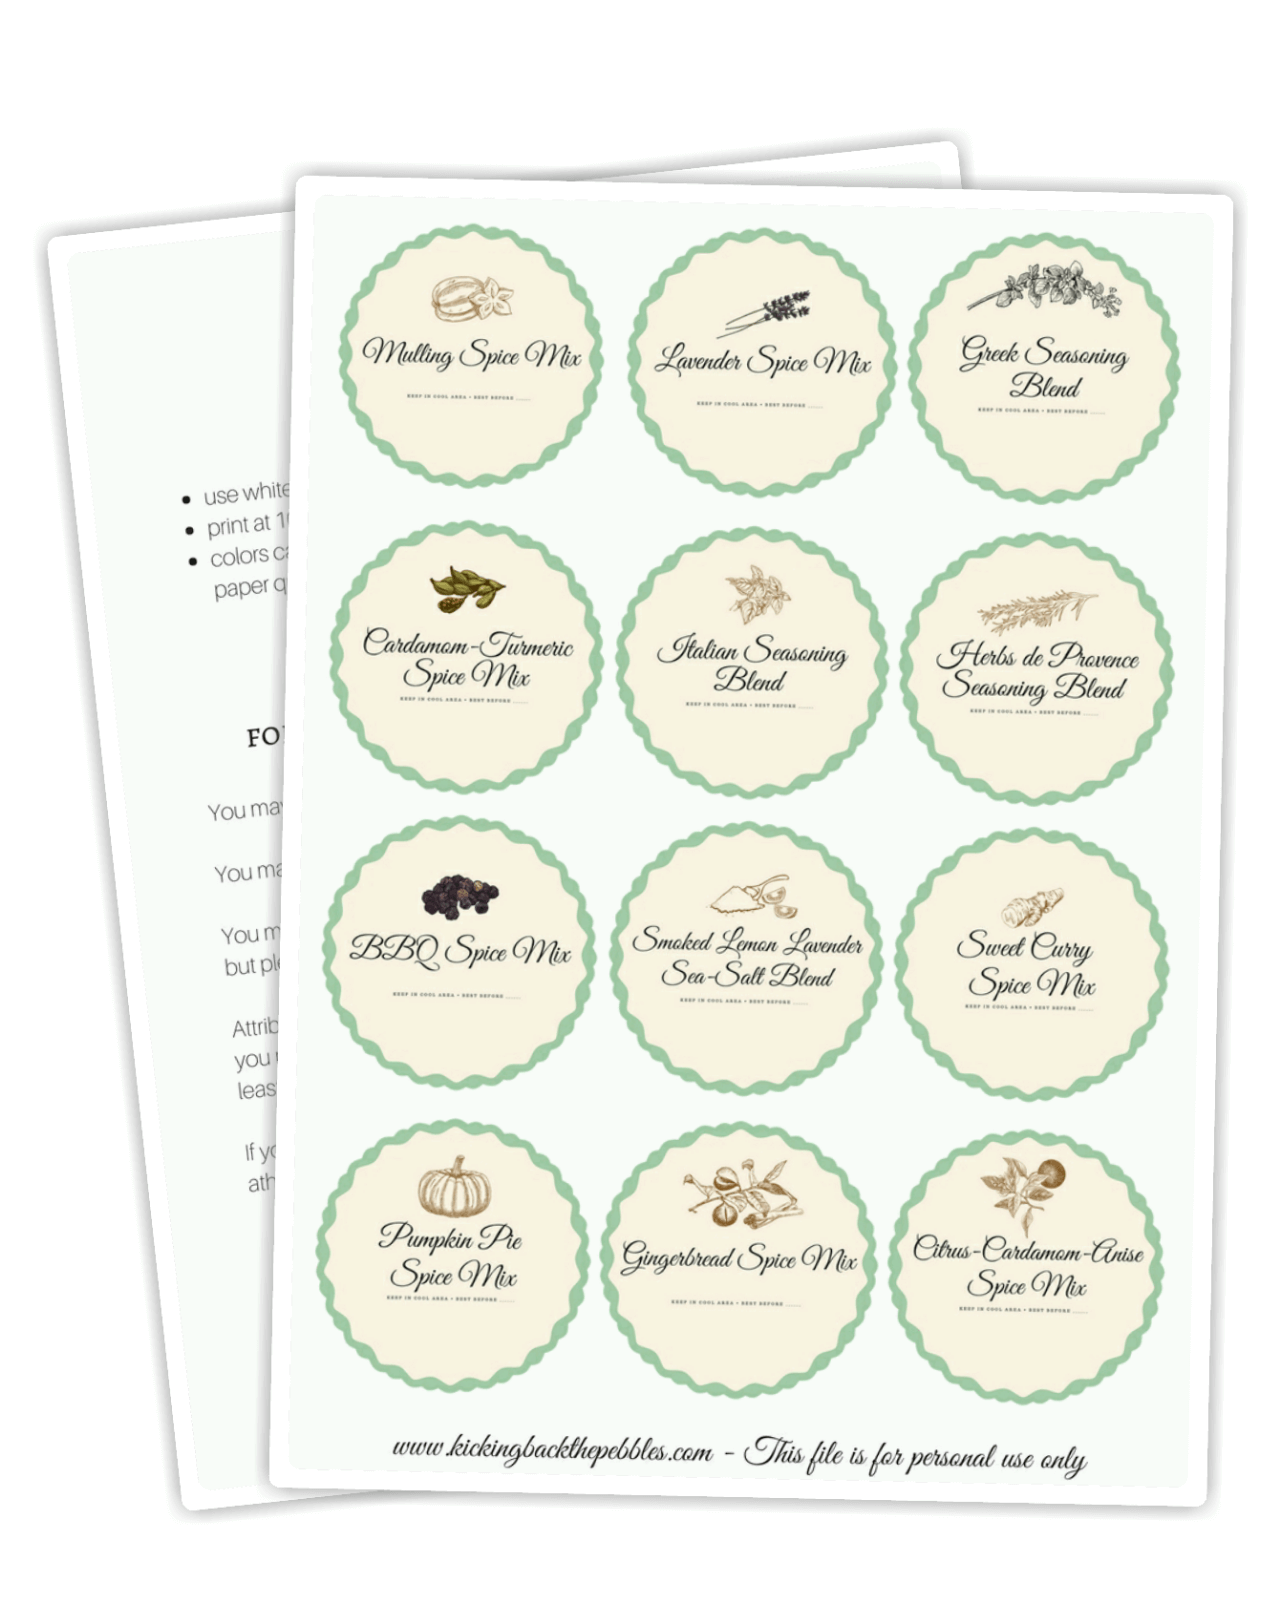 Spice Calendar Labels by Kicking Back the Pebbles